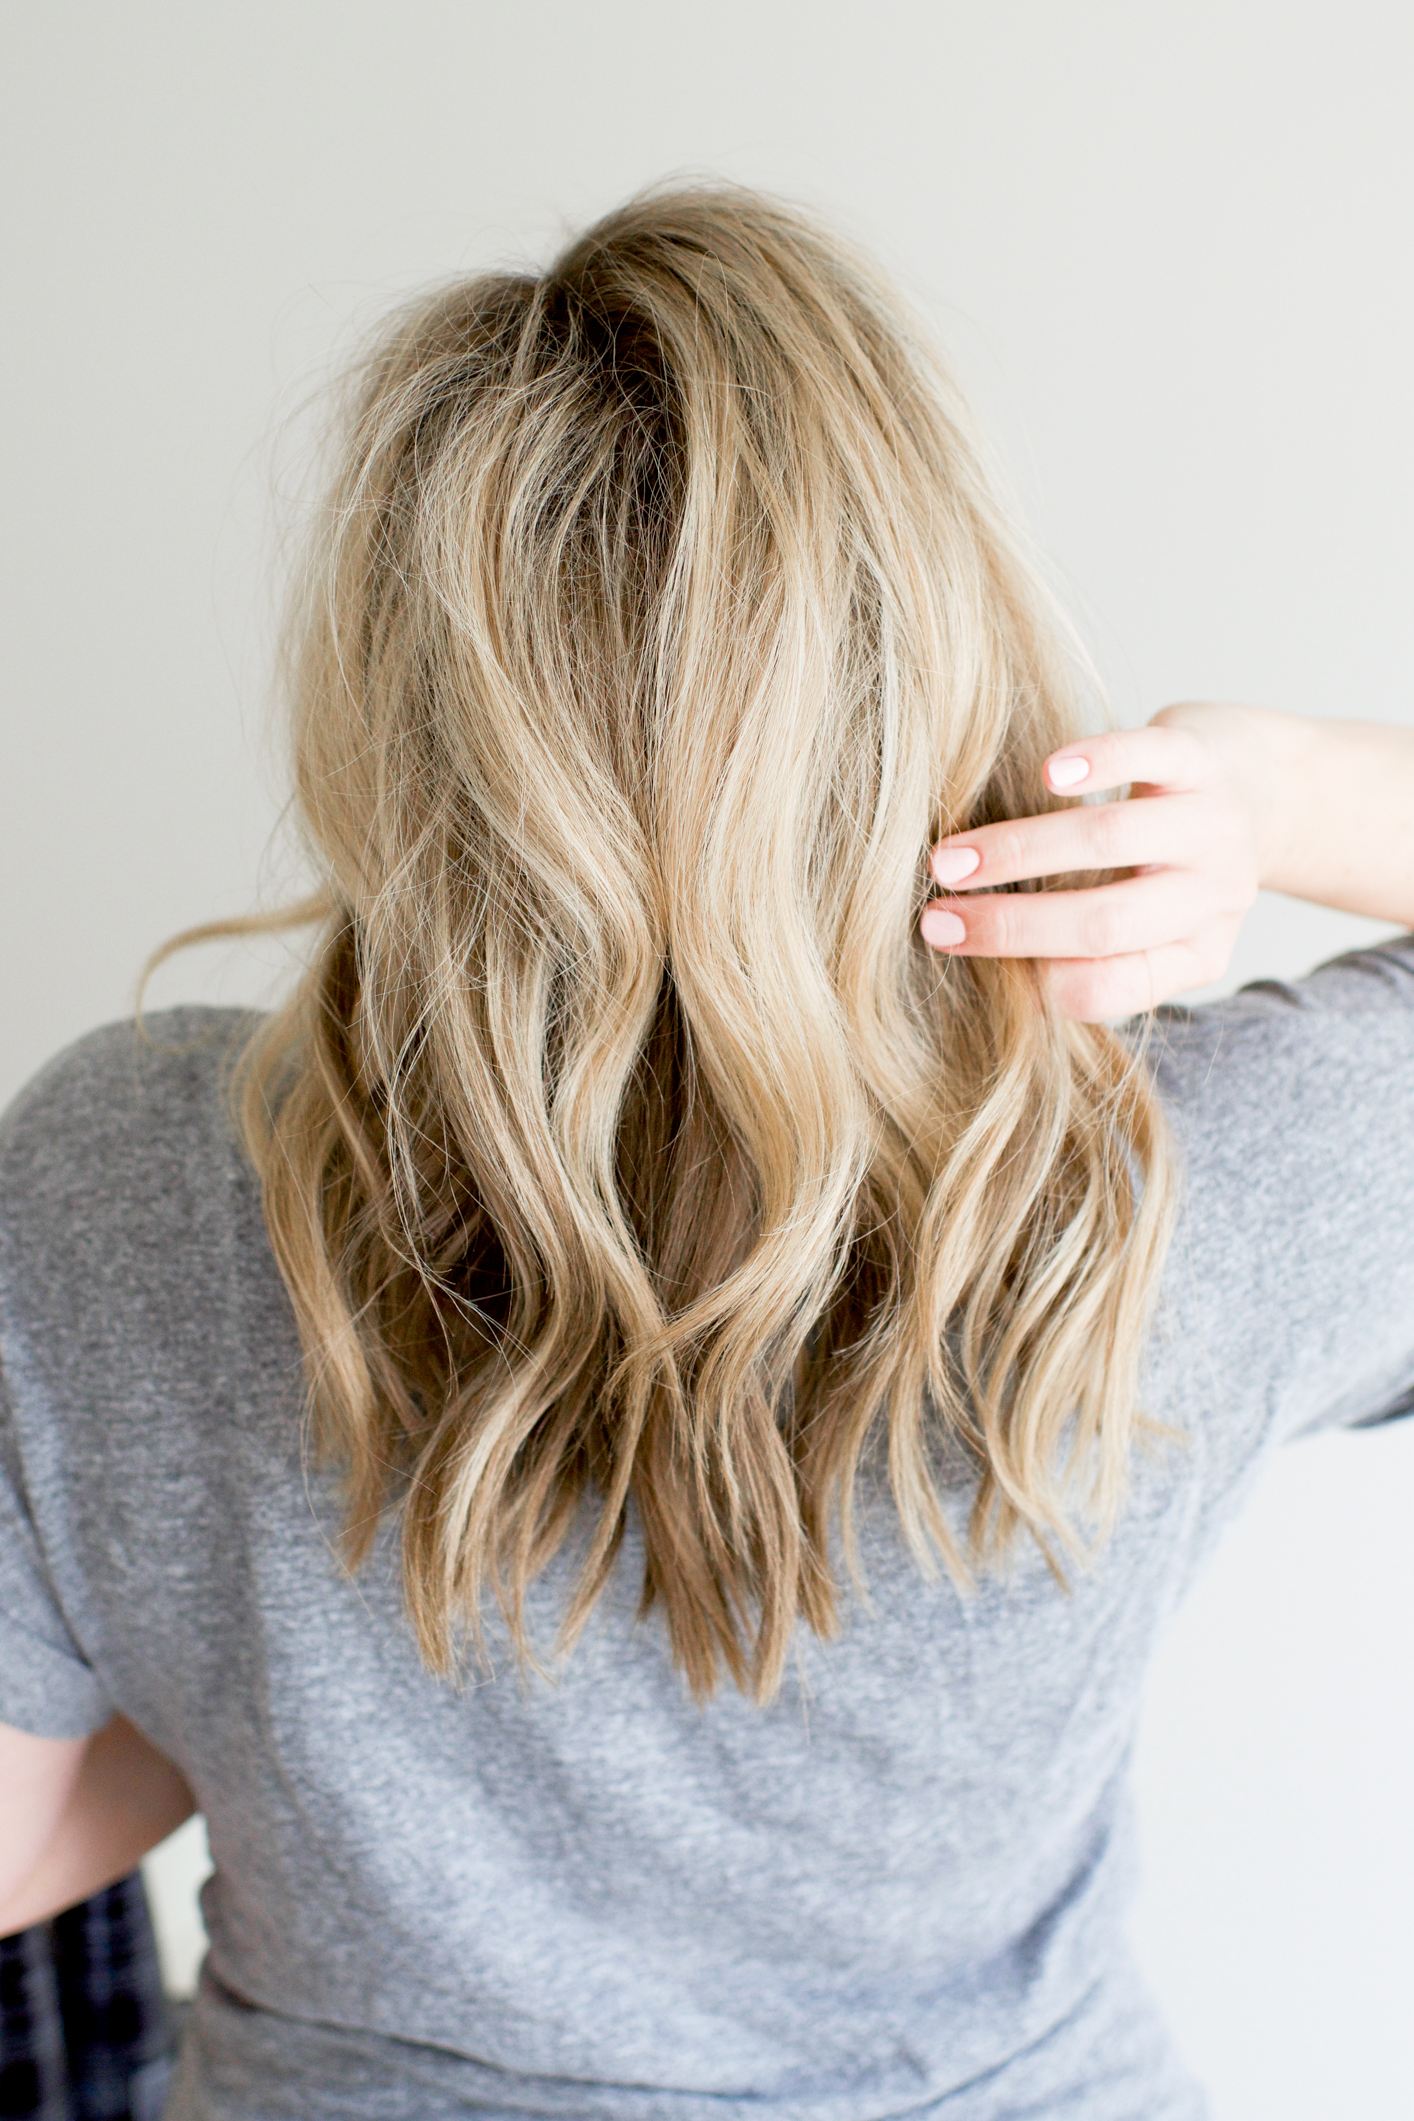 How Do You Tell Your Stylist You Are Unhappy With Your Hair The